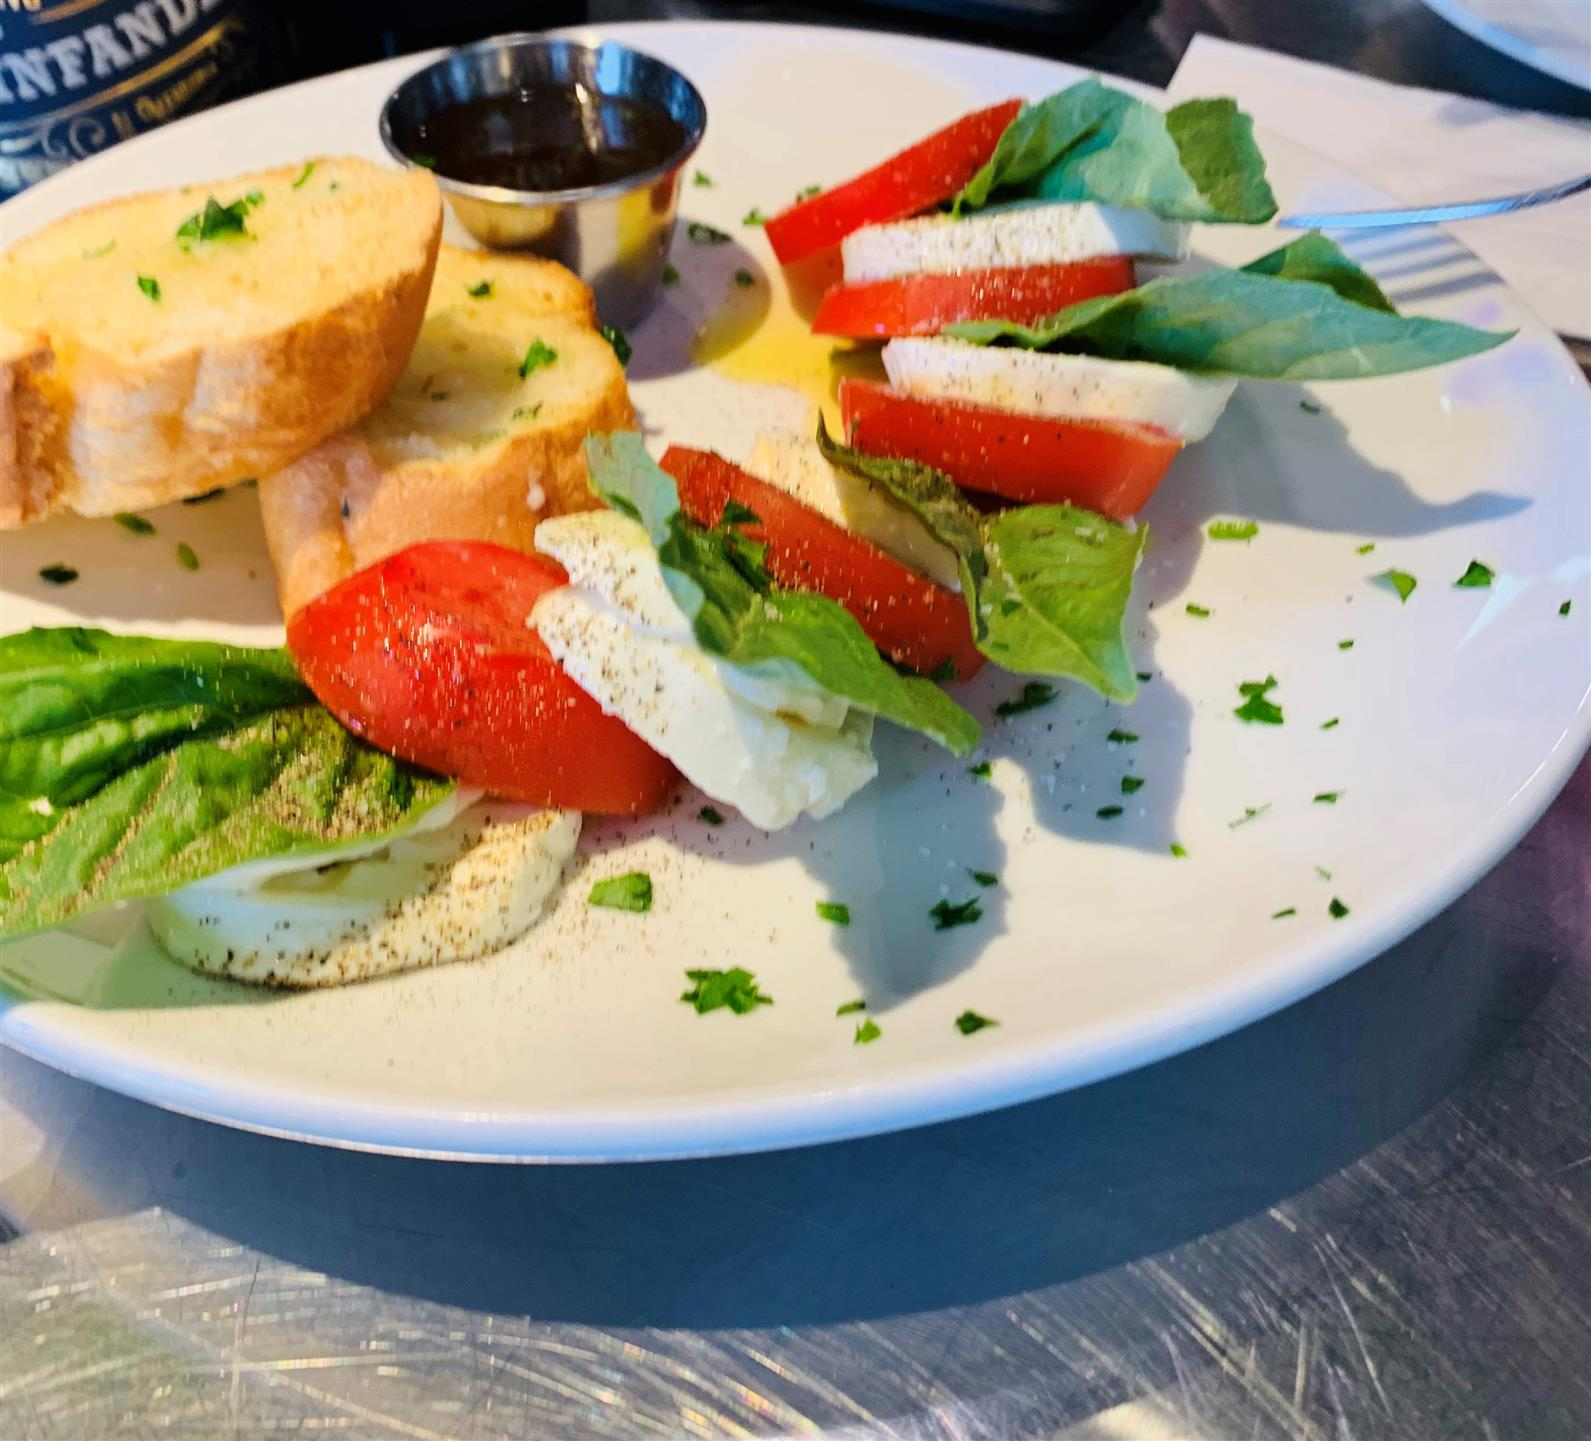 Mozzarella di bufala, Roma tomato, basil, extra virgin olive oil and balsamic vinegar on a plate